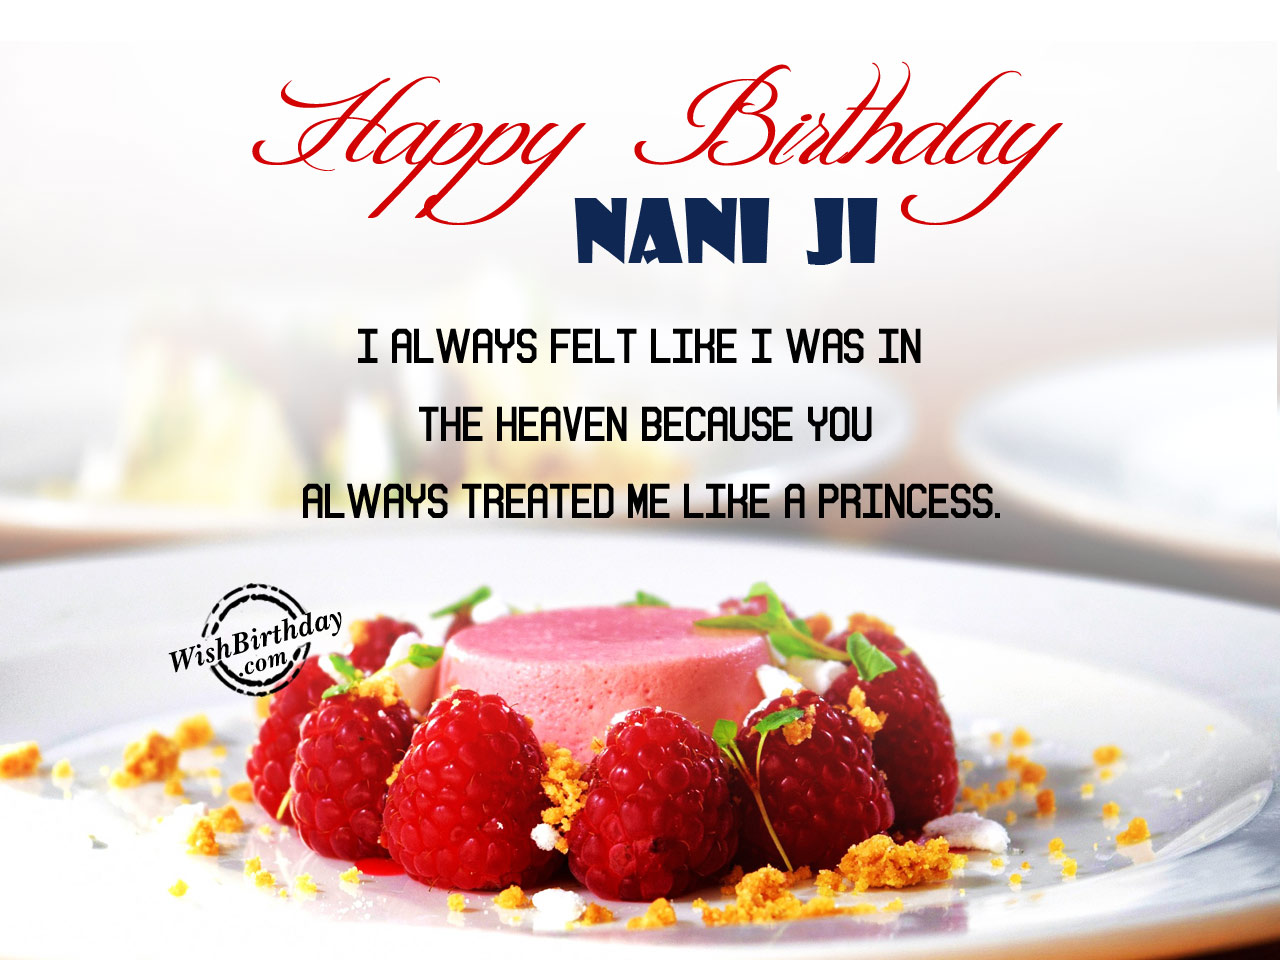 Birthday Wishes For Nani Ji Birthday Images Pictures Happy Birthday Wishes For In Heaven